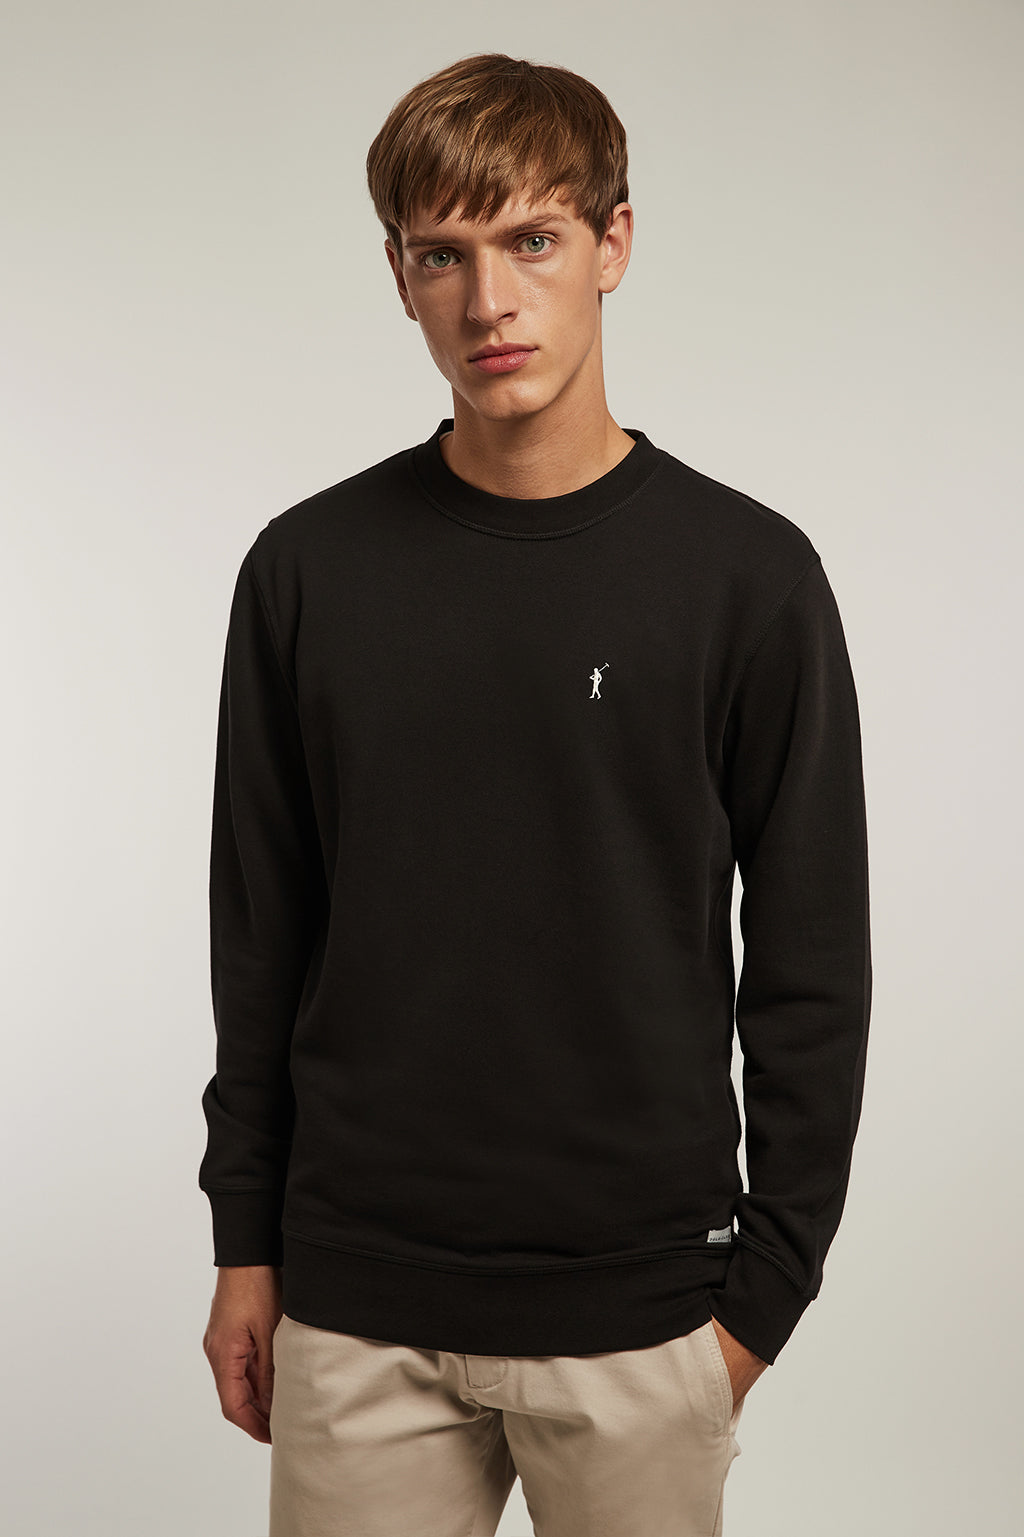 Black organic sweatshirt with contrast embroidery